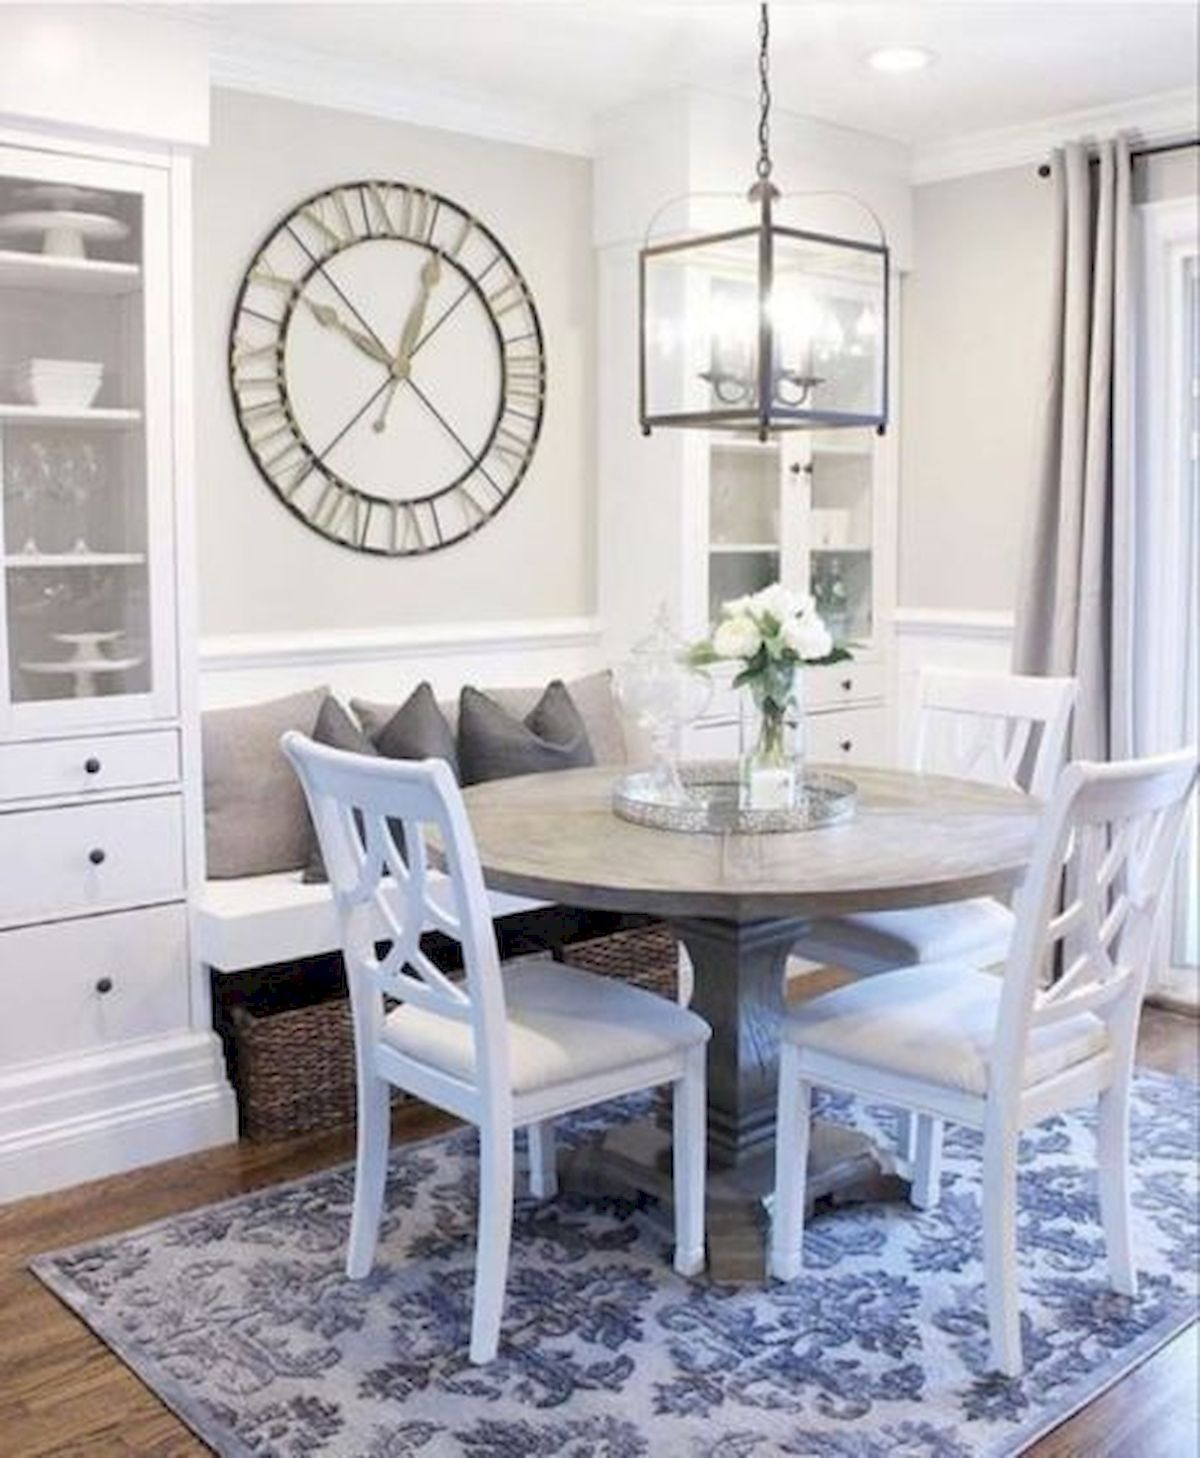 20 Small Dining Room Ideas On A Budget: Small Dining Room Decorating Ideas On A Budget